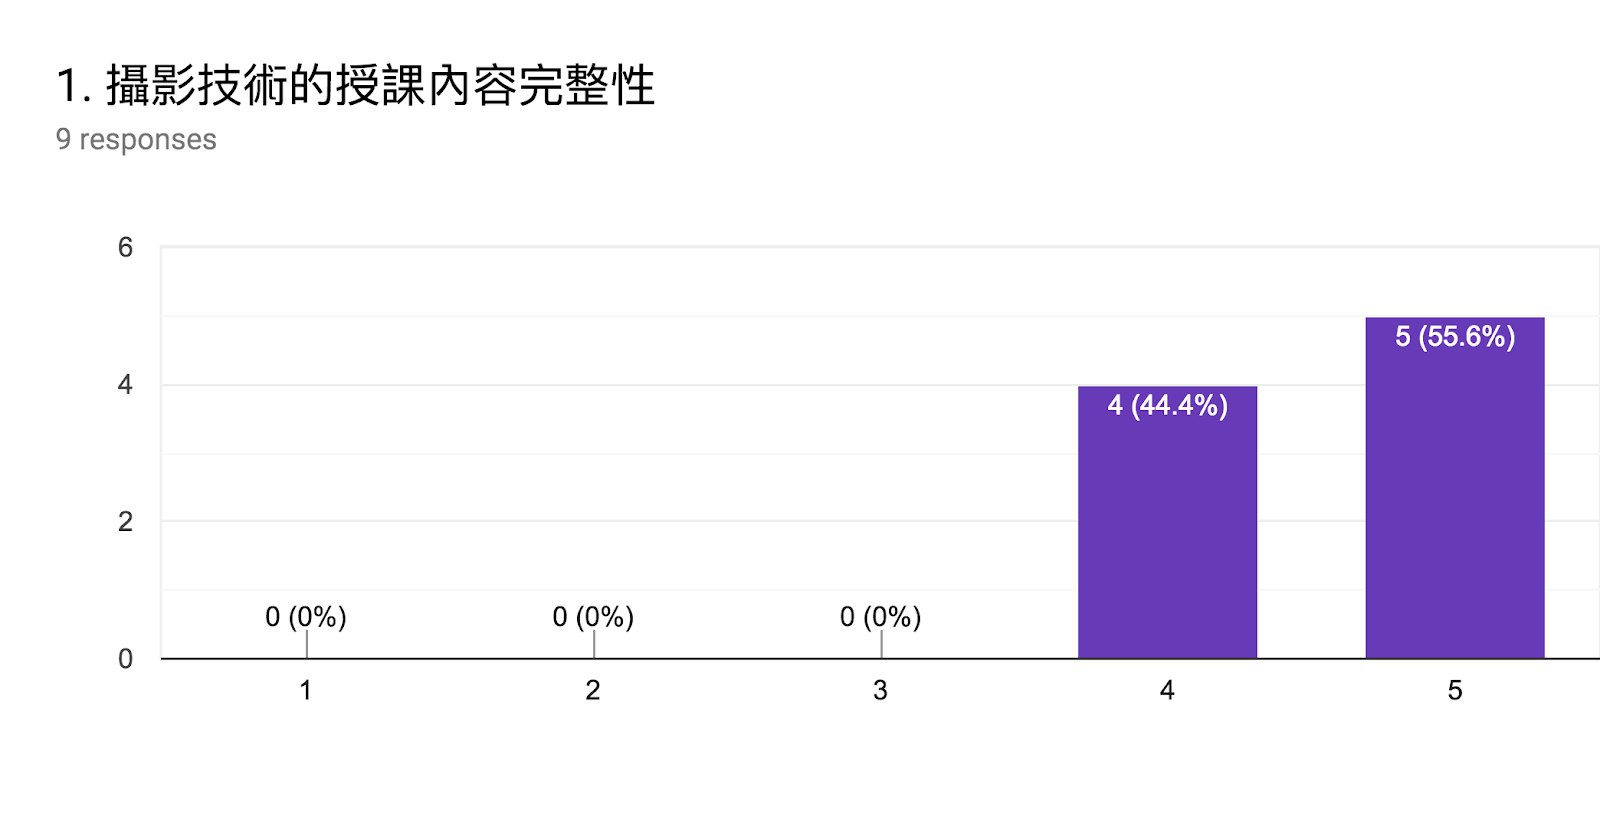 Forms response chart. Question title: 1. 攝影技術的授課內容完整性. Number of responses: 9 responses.